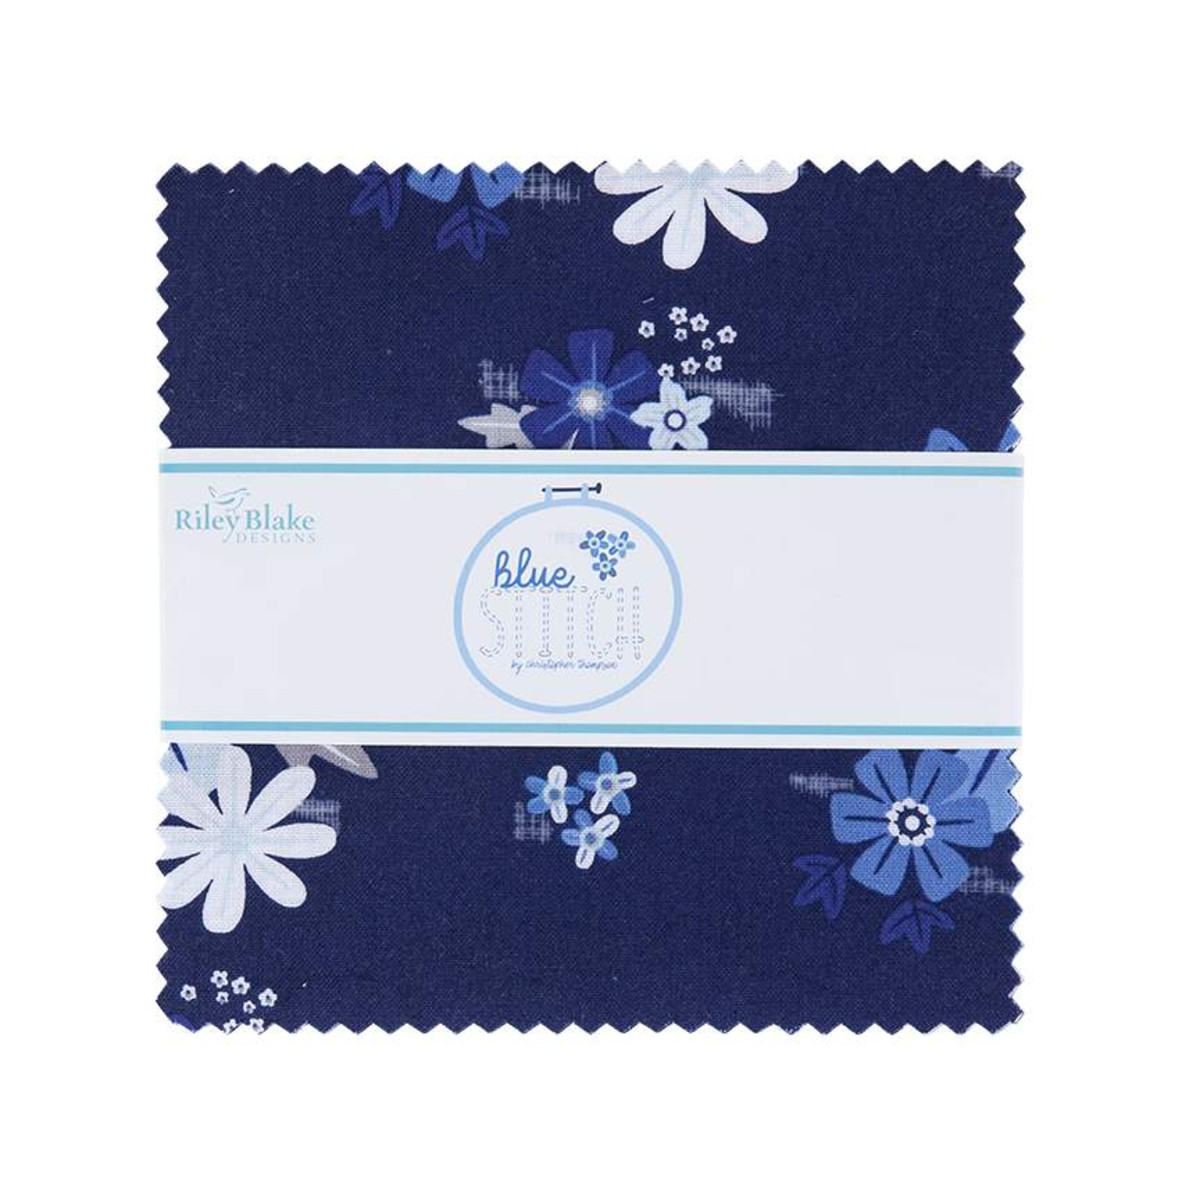 Riley Blake Charm Pack - Blue Stitch by Christopher Thompson